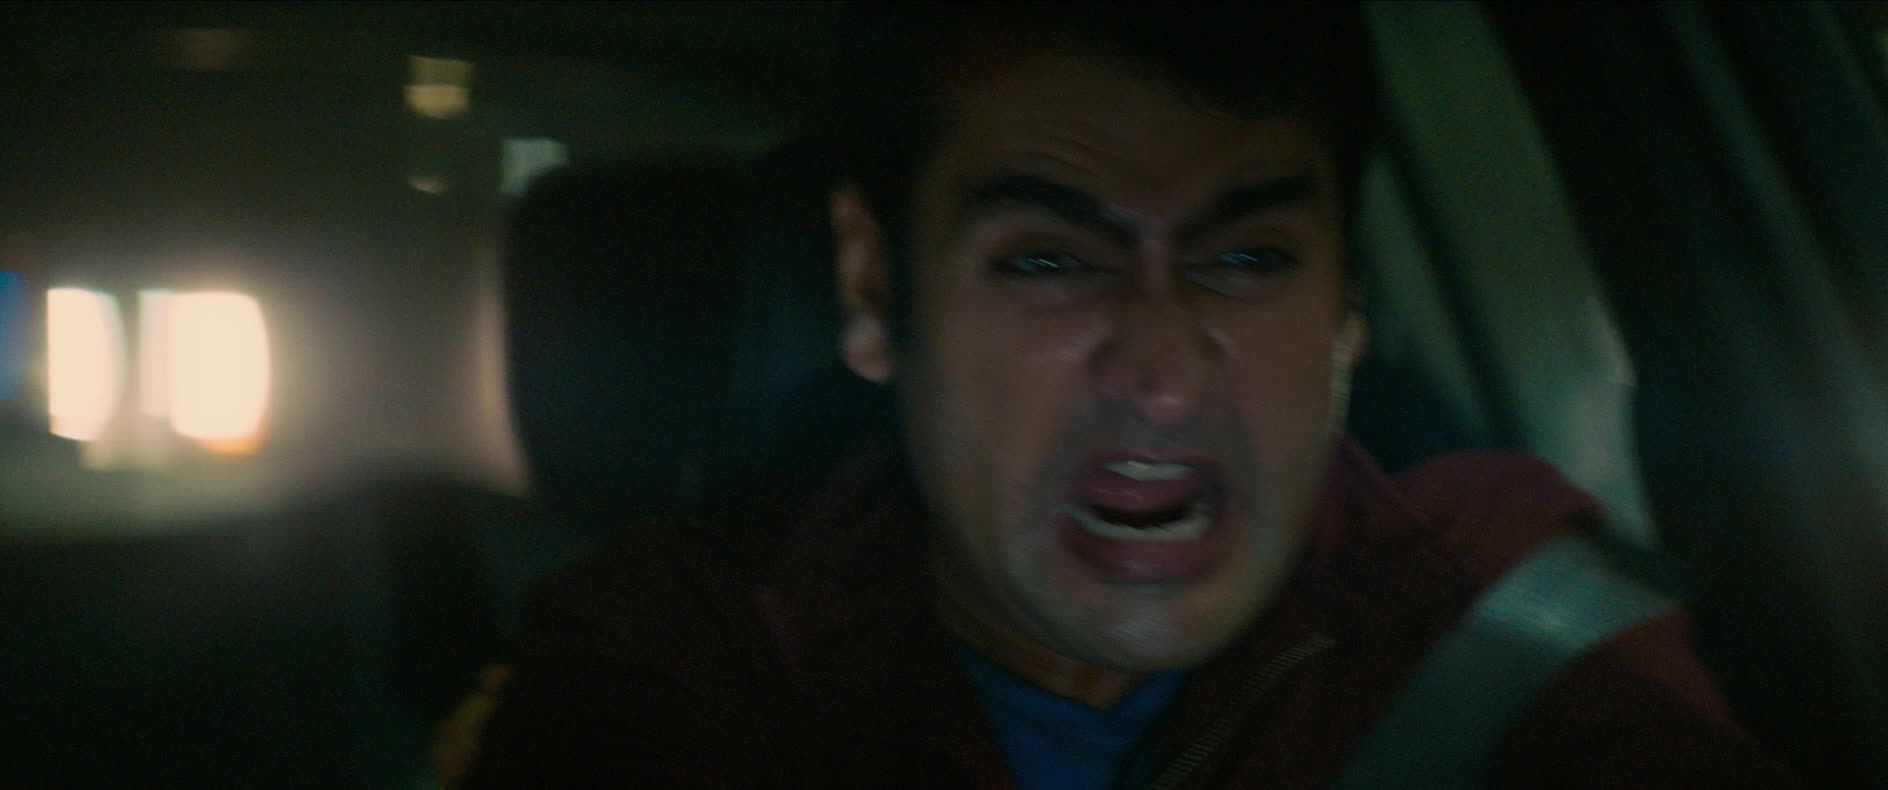 dave bautista, kumail nanjiani, scream, stuber, stuber movie, uber, Kumail and Dave Driving and Screaming GIFs